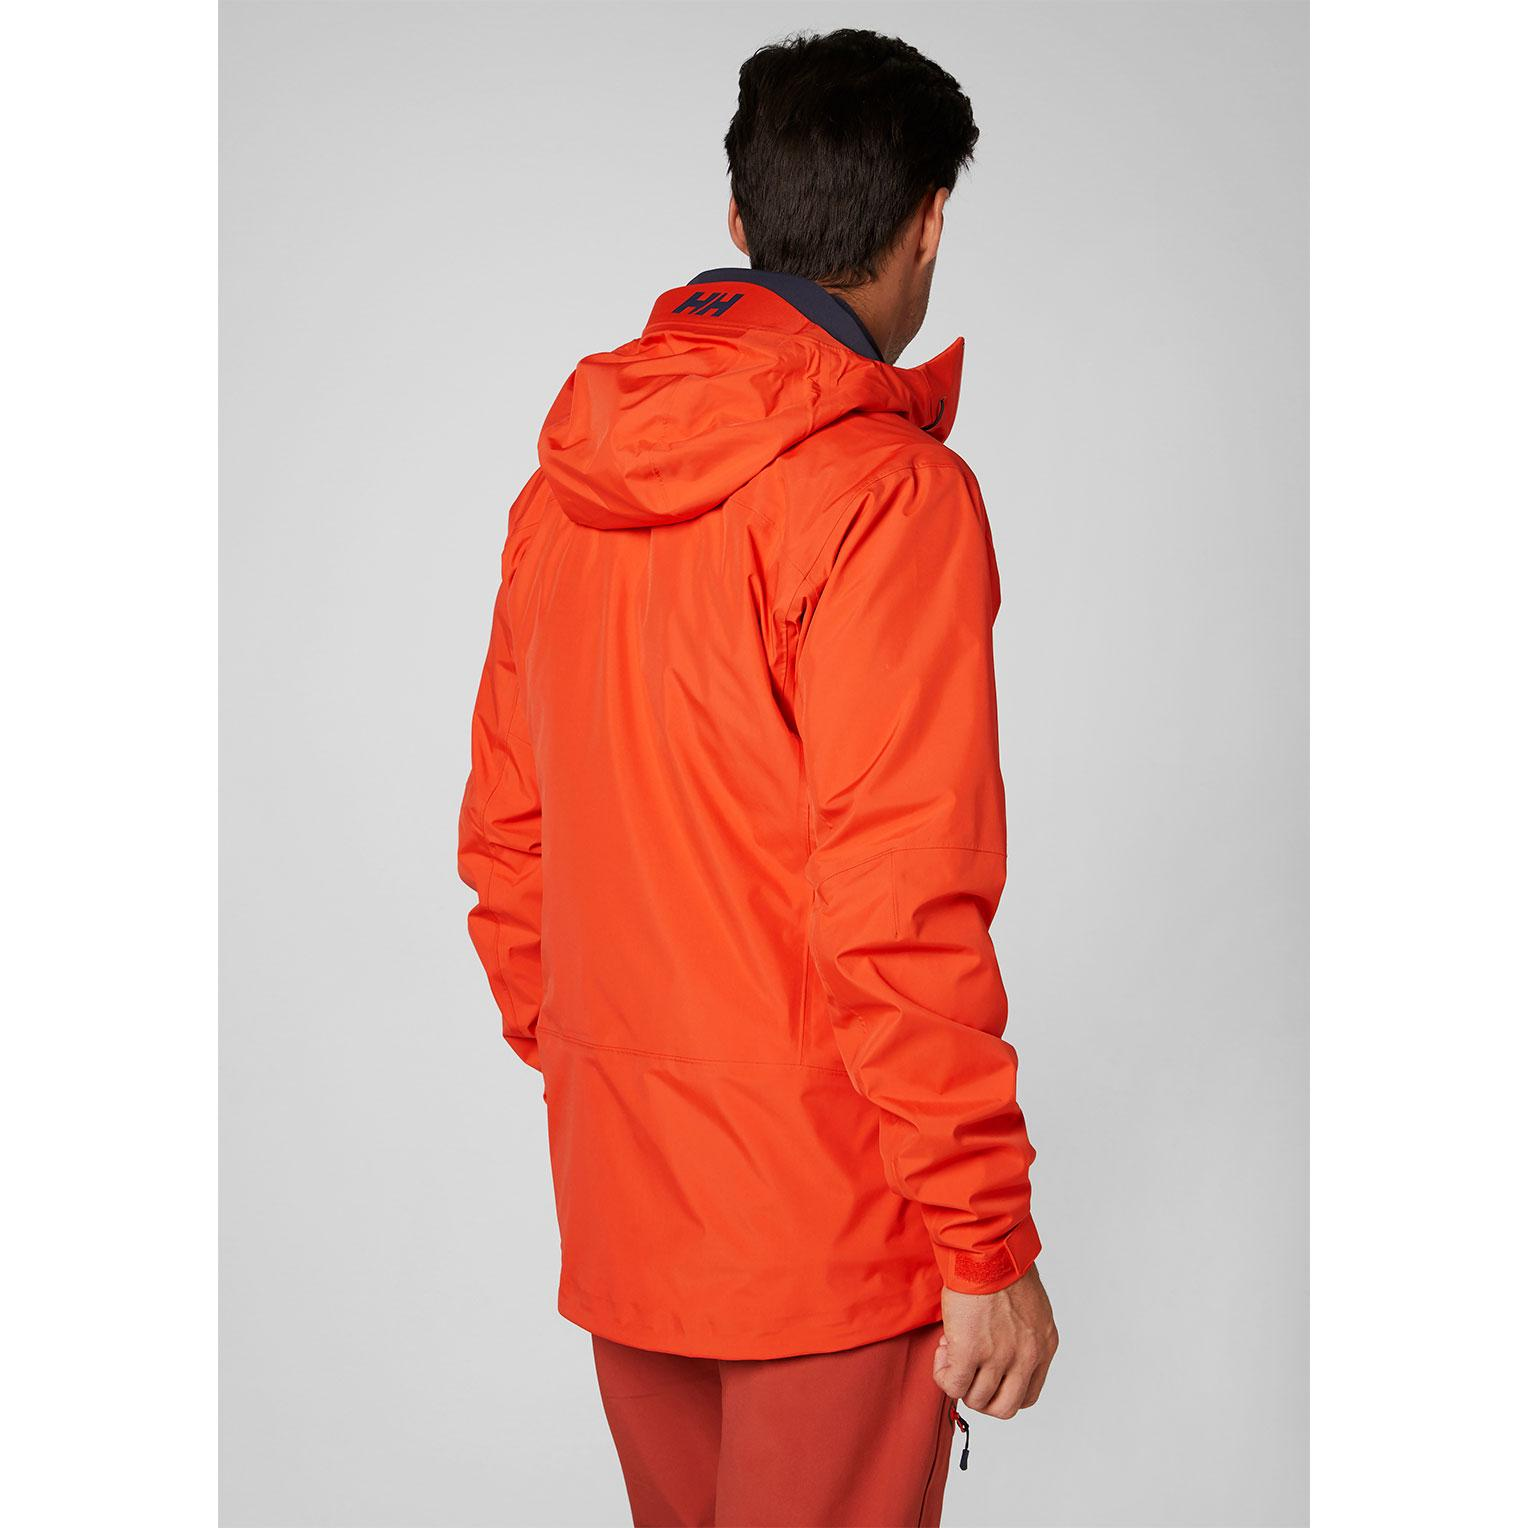 4114a7acf Helly Hansen - Red Verglas 3l Shell Jacket for Men - Lyst. View fullscreen